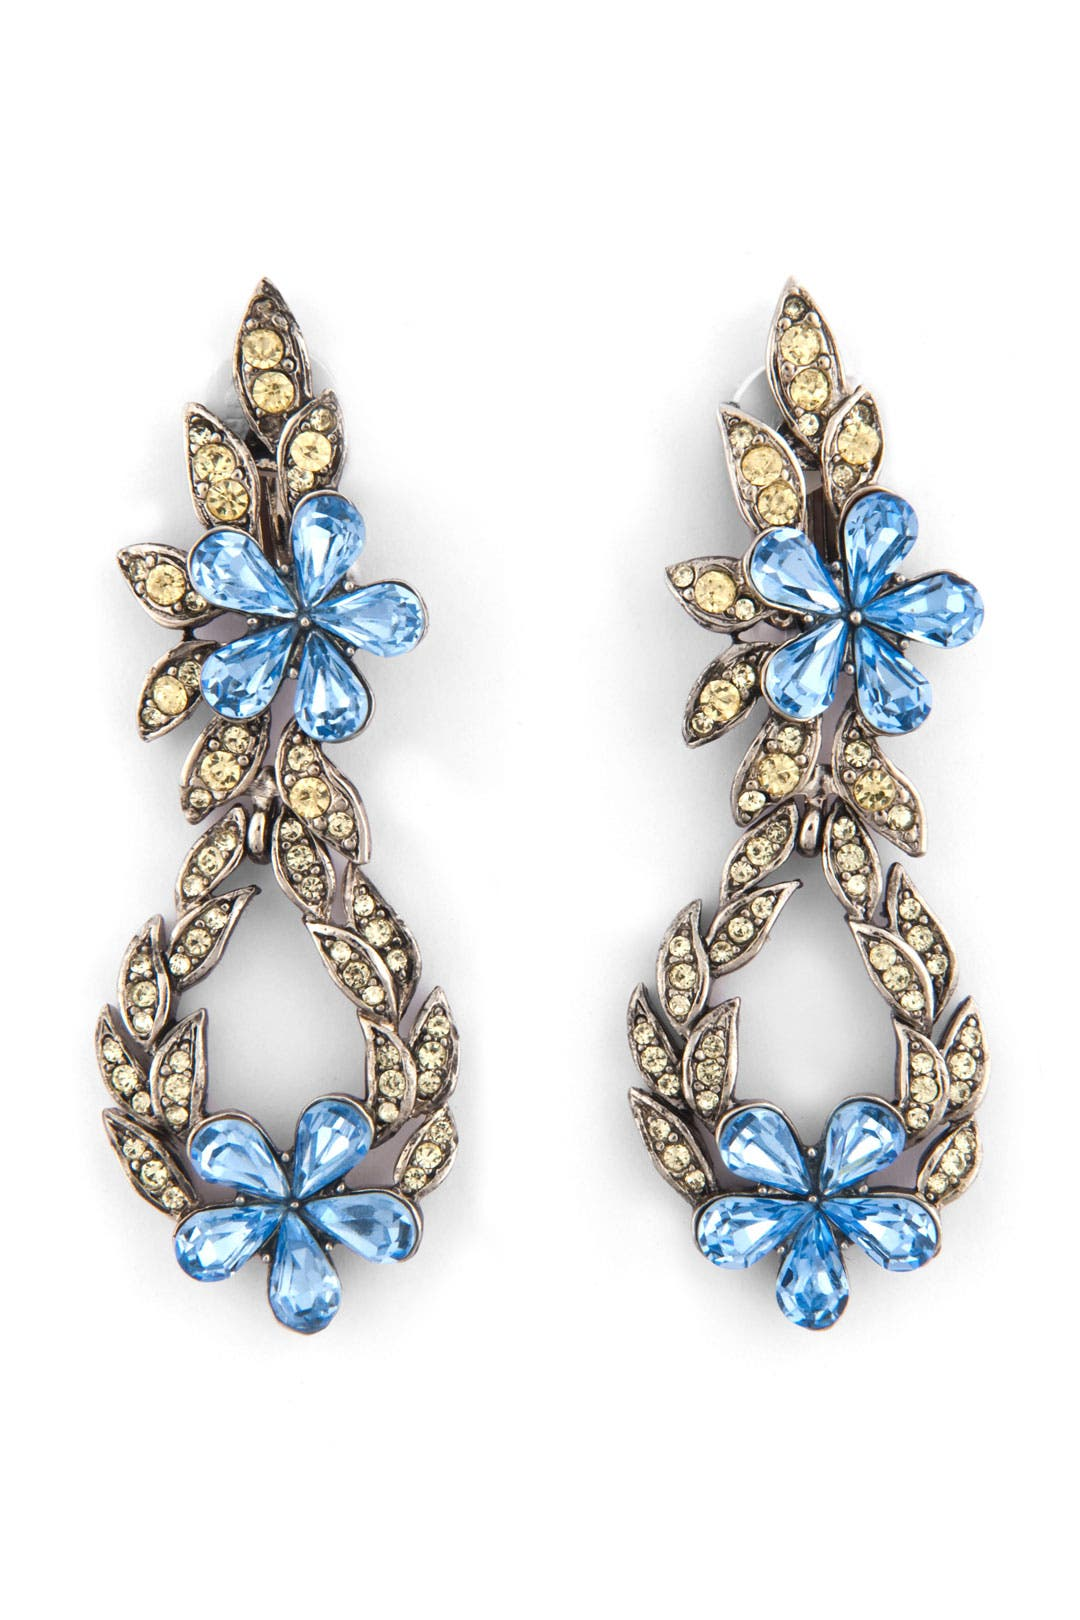 Doorknocker Crystal Earrings by Trudelle Laker